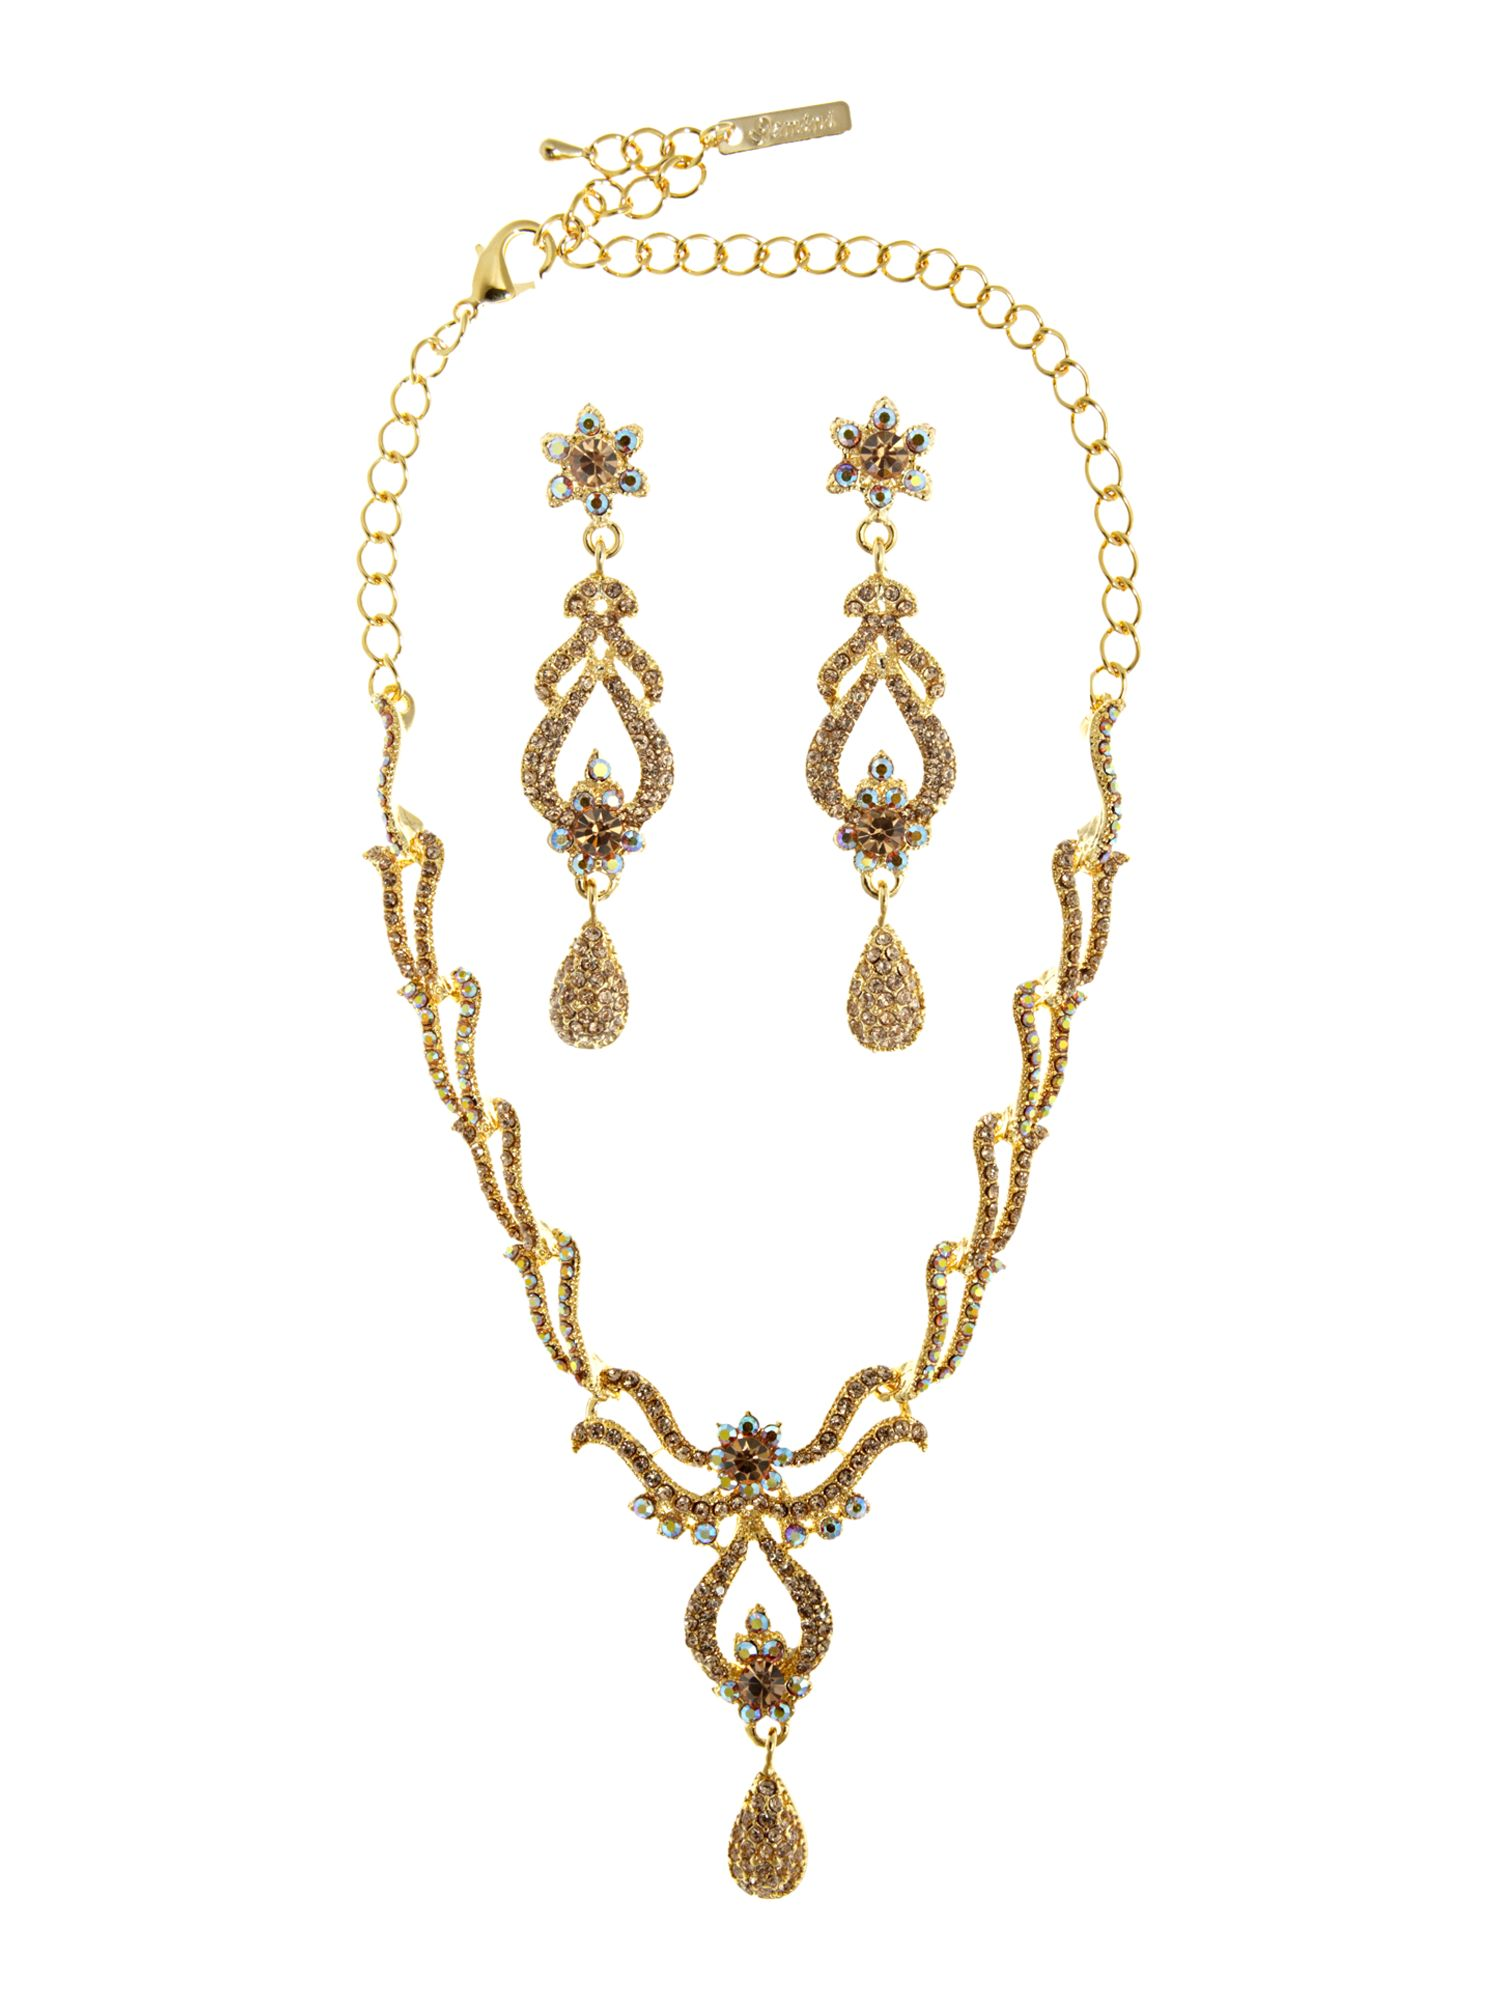 Gemini Vintage necklace set with swarovski crystals